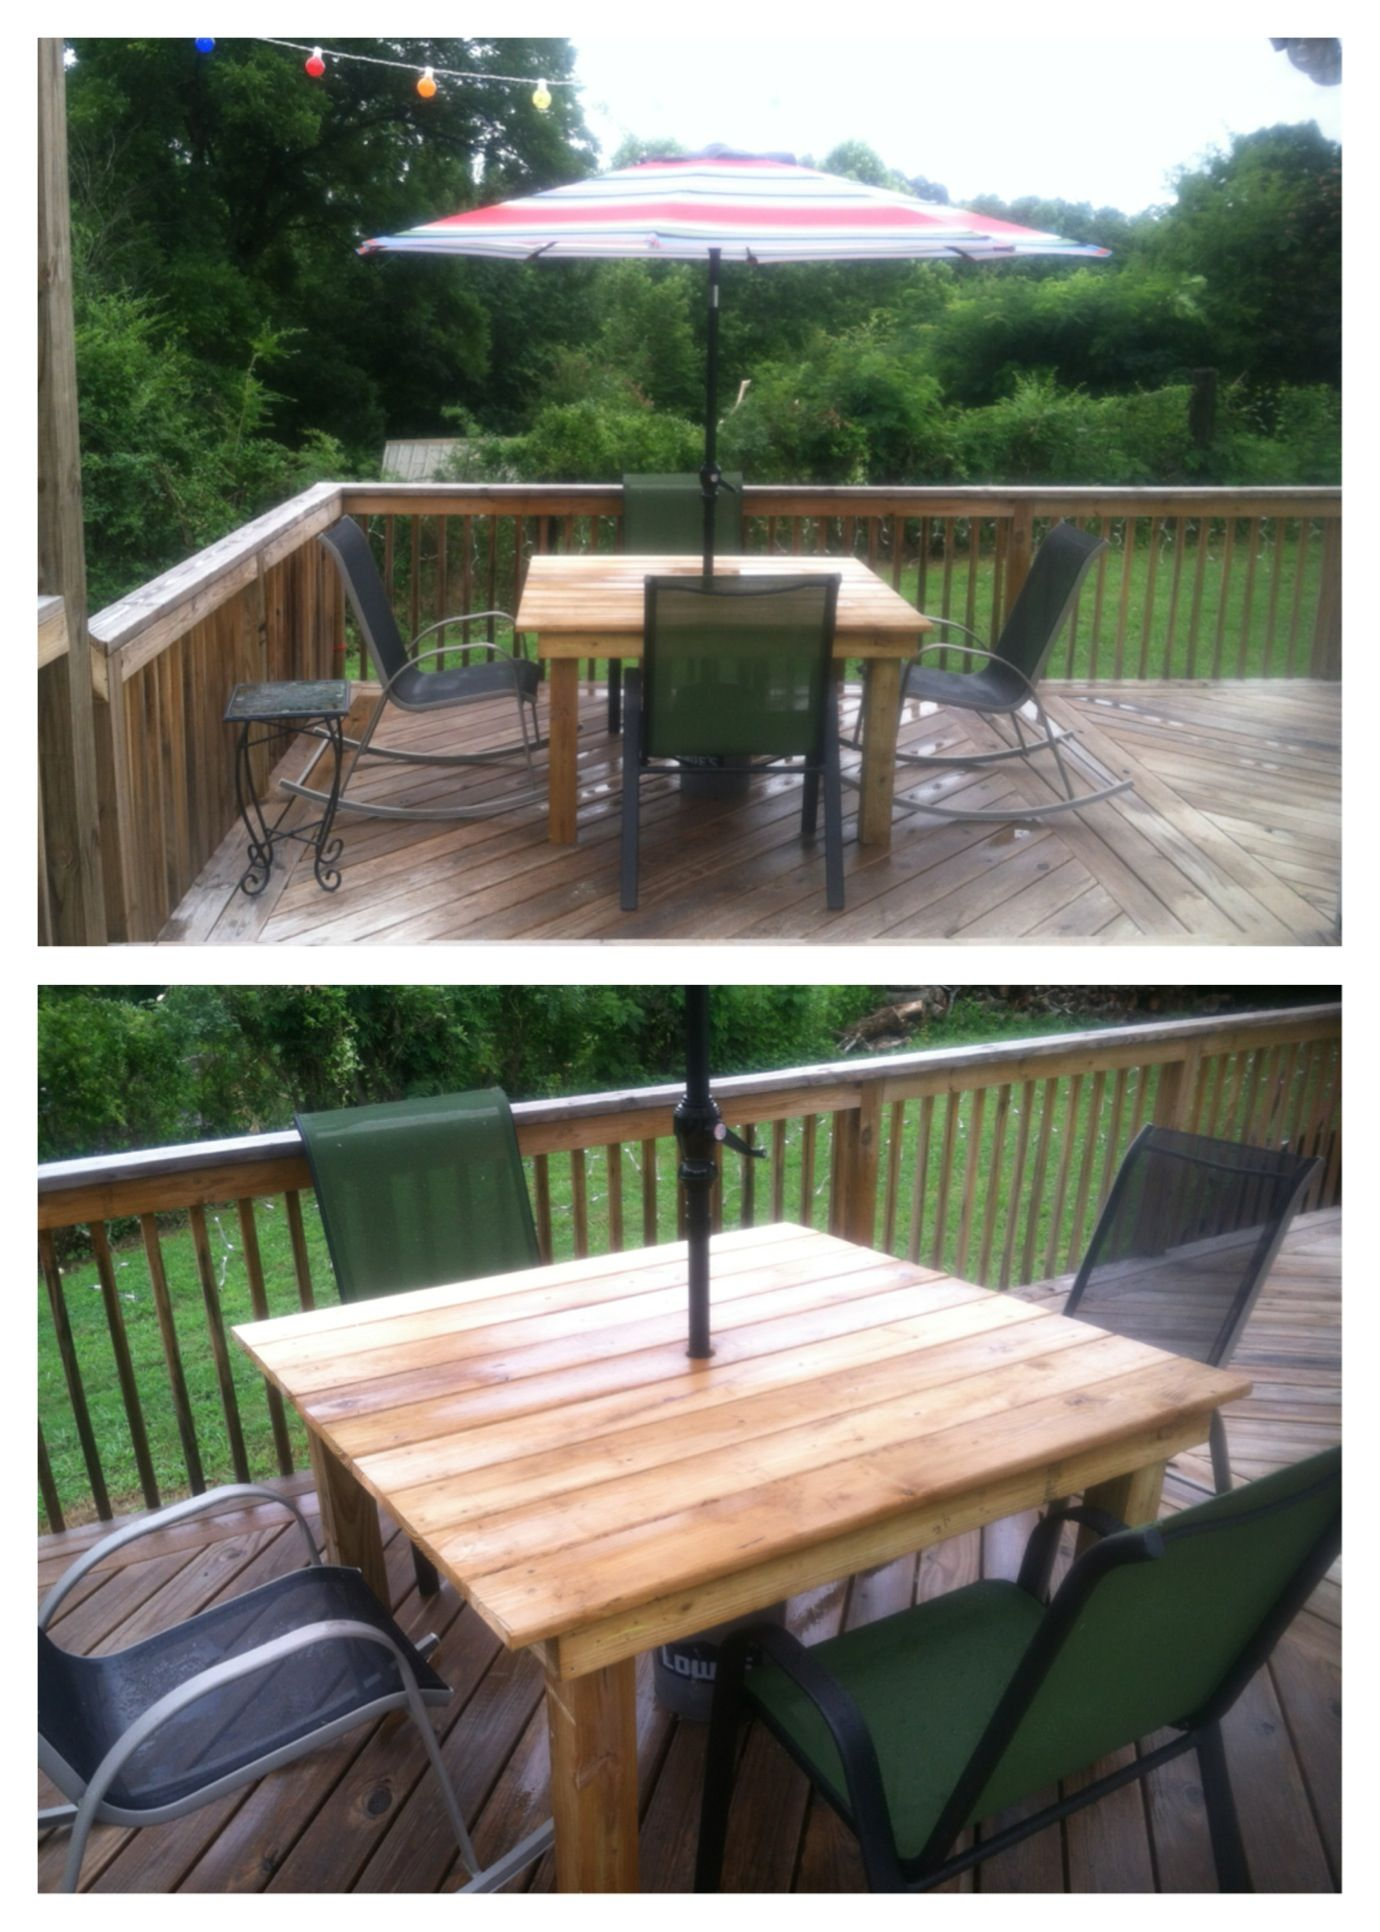 Patio table made from scrap lumber. Umbrella bought at